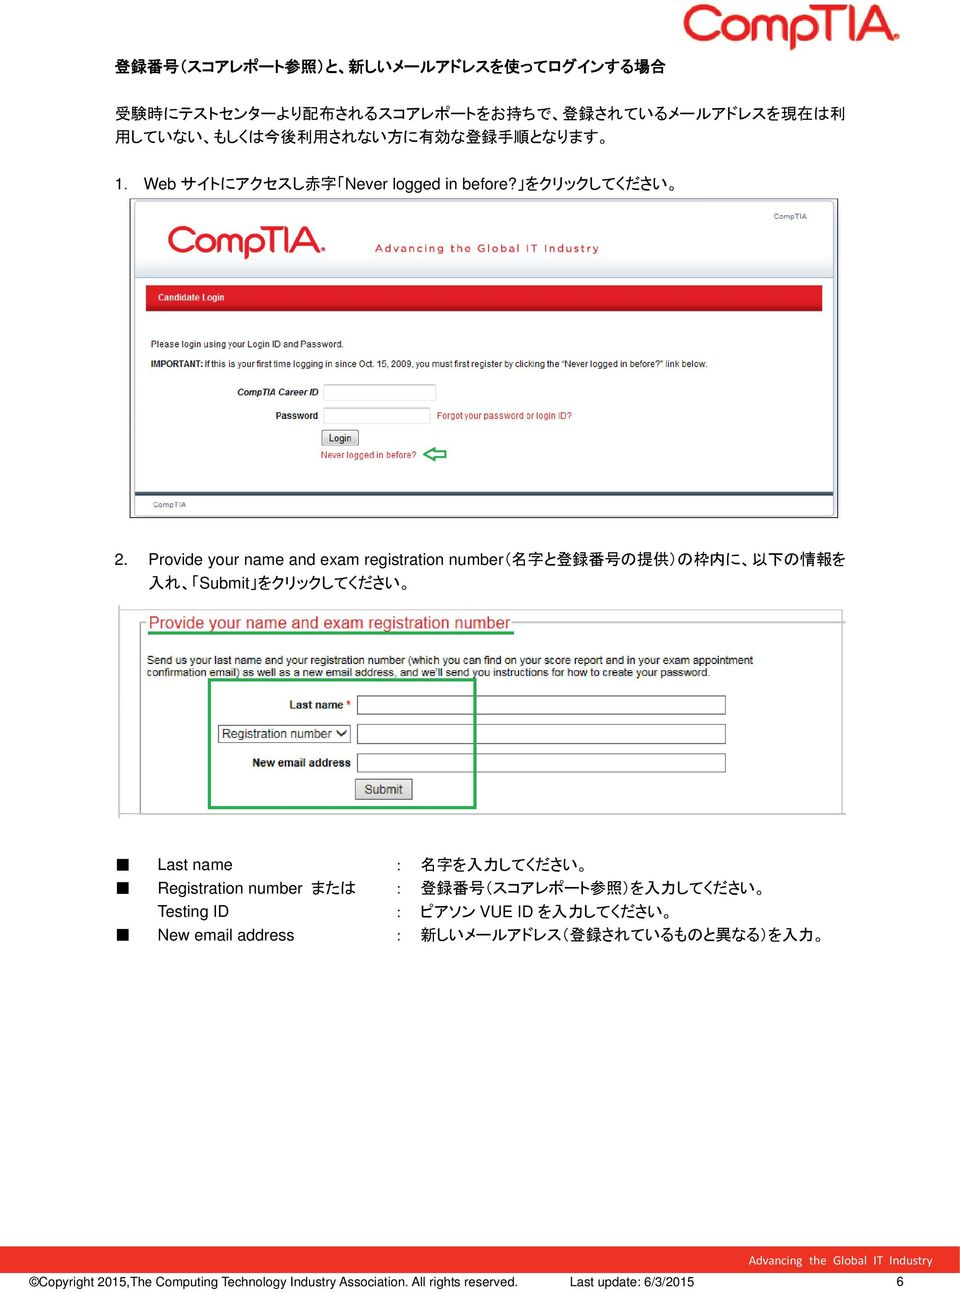 Provide your name and exam registration number( 名 字 と 登 録 番 号 の 提 供 )の 枠 内 に 以 下 の 情 報 を 入 れ Submit をクリックしてください Last name : 名 字 を 入 力 してください Registration